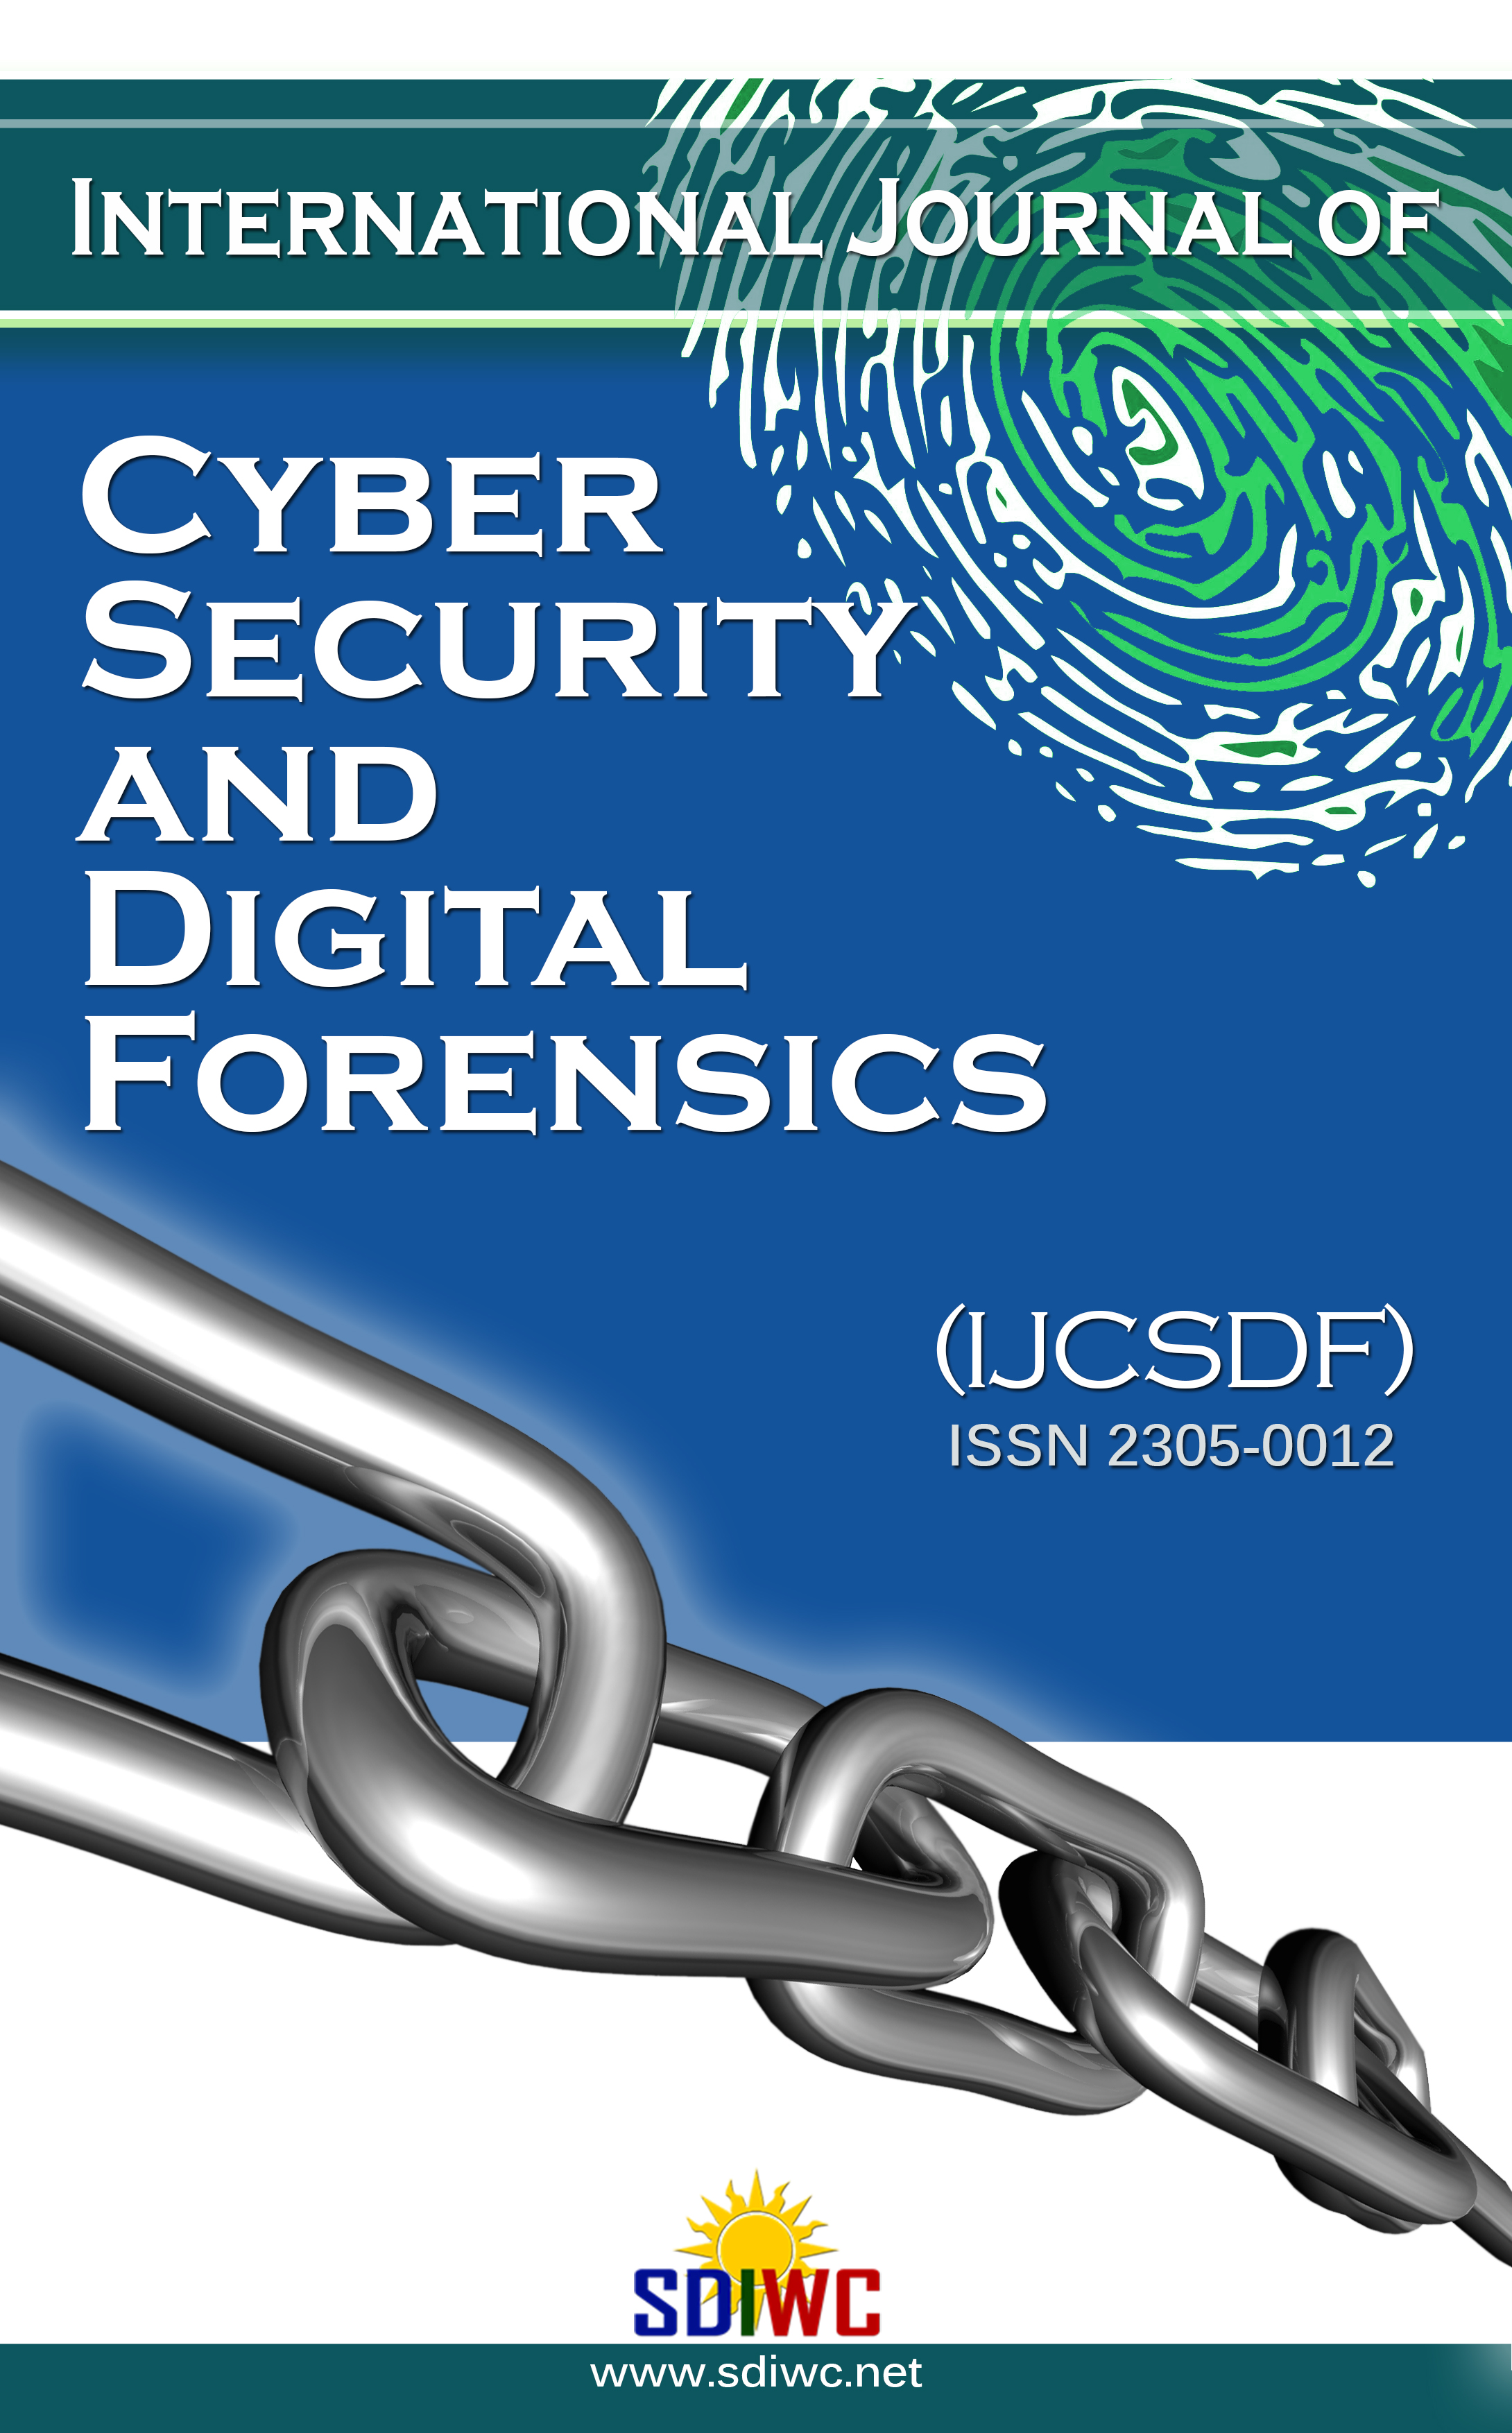 digital forensic research papers Have you published an article or whitepaper that you'd like to list here do you know of a good one that you'd like to tell us about send the dfa an email with the url.